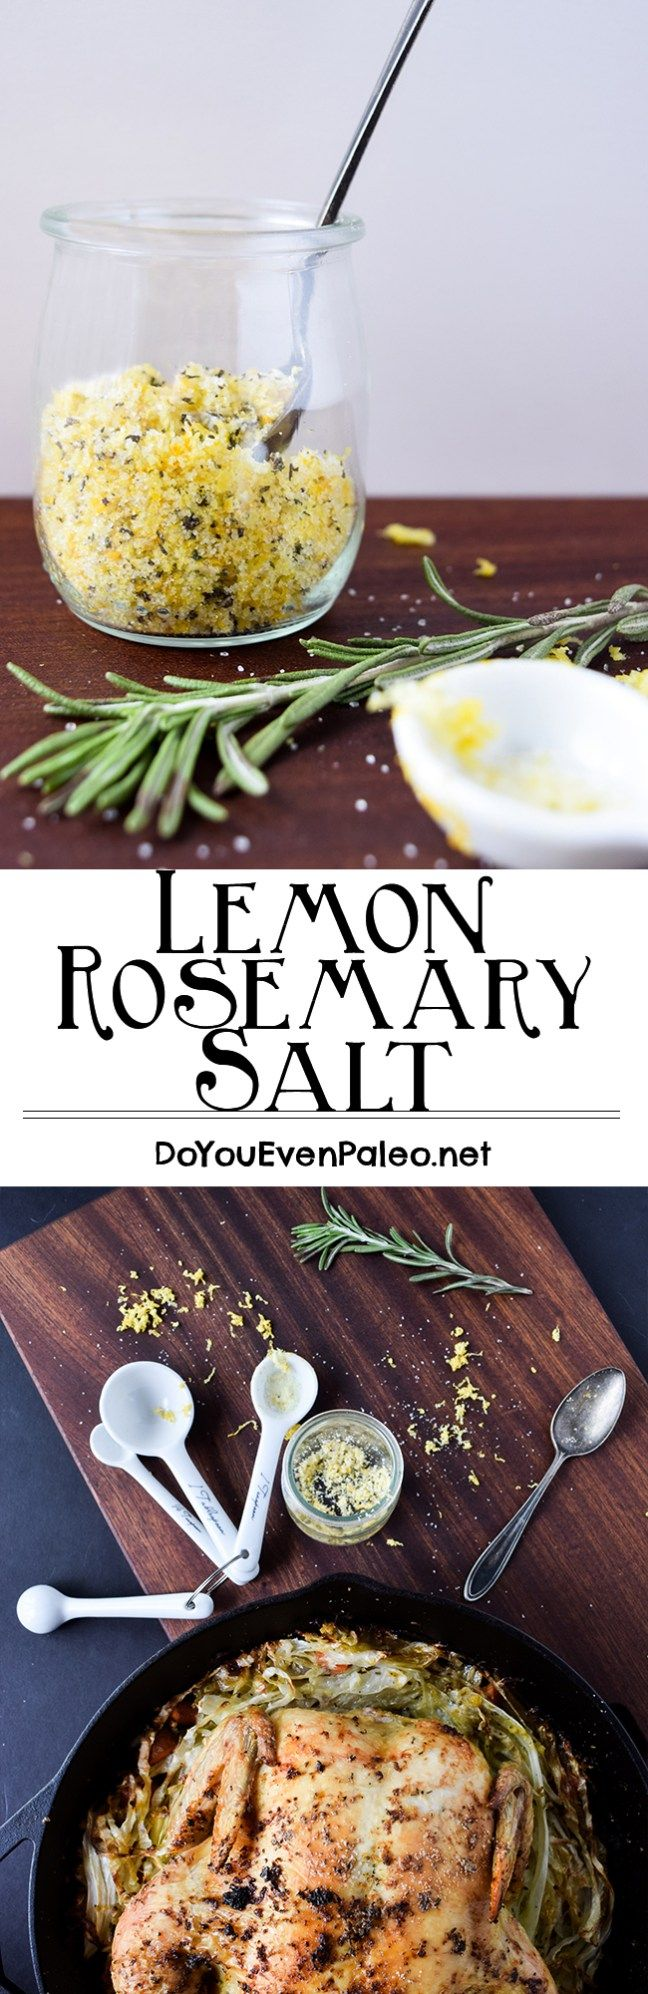 Lemon Rosemary Salt - a 3-ingredient salt blend with a variety of uses! Rub it on chicken, pork, or fish. Sprinkle on roasted veggies. Simple! | DoYouEvenPaleo.net